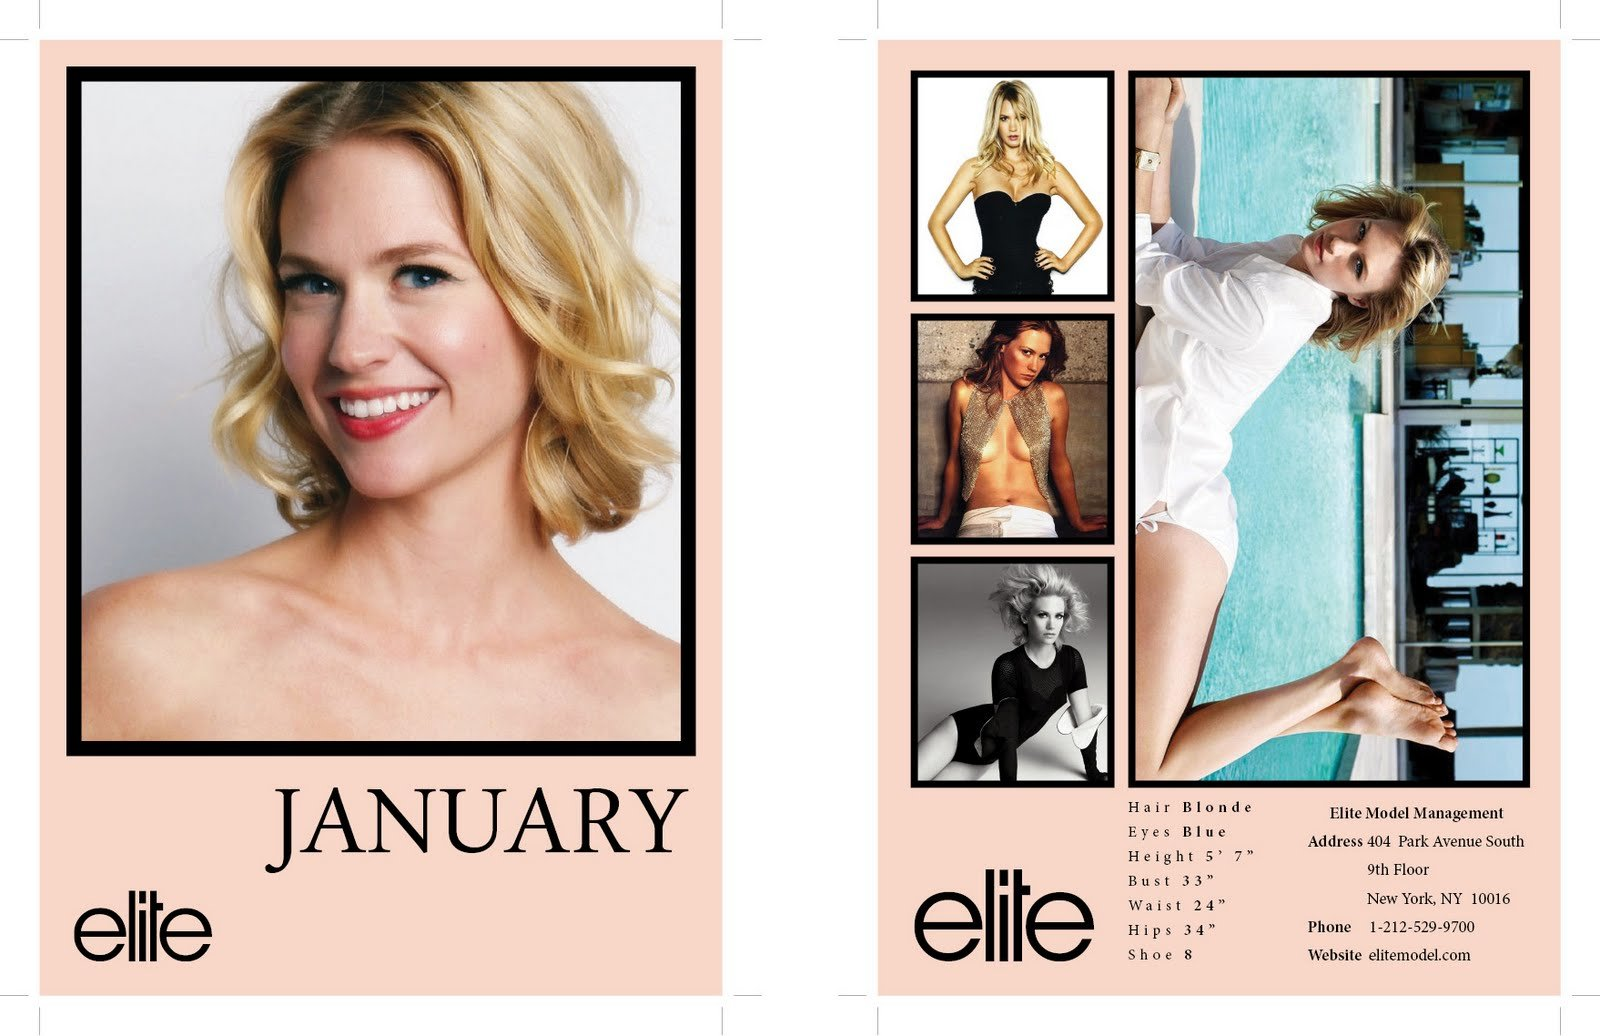 How to speak like a model glamour crystals for Free model comp card template psd